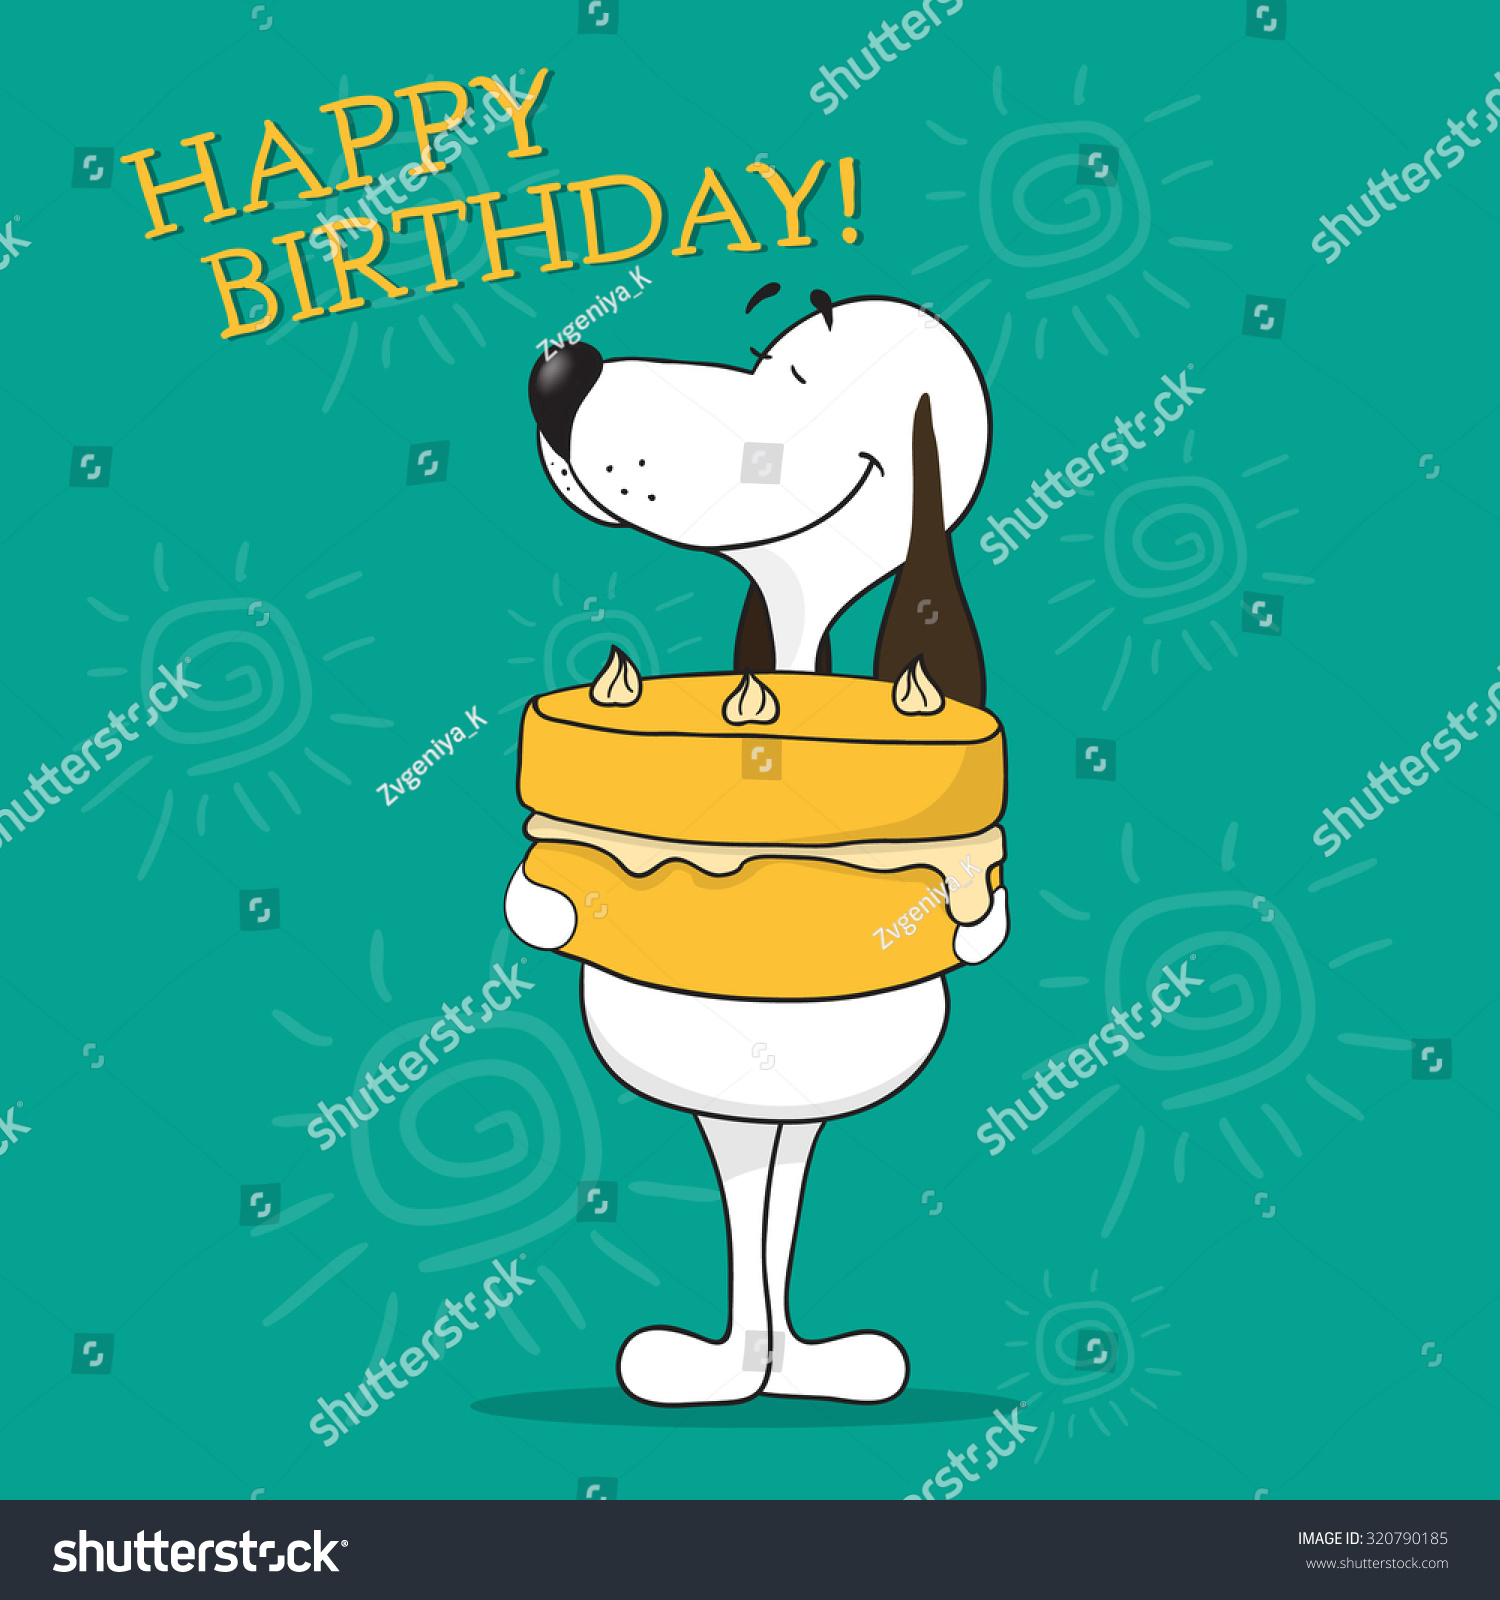 Greeting Card Happy Birthday Funny Cartoon Stock Vector